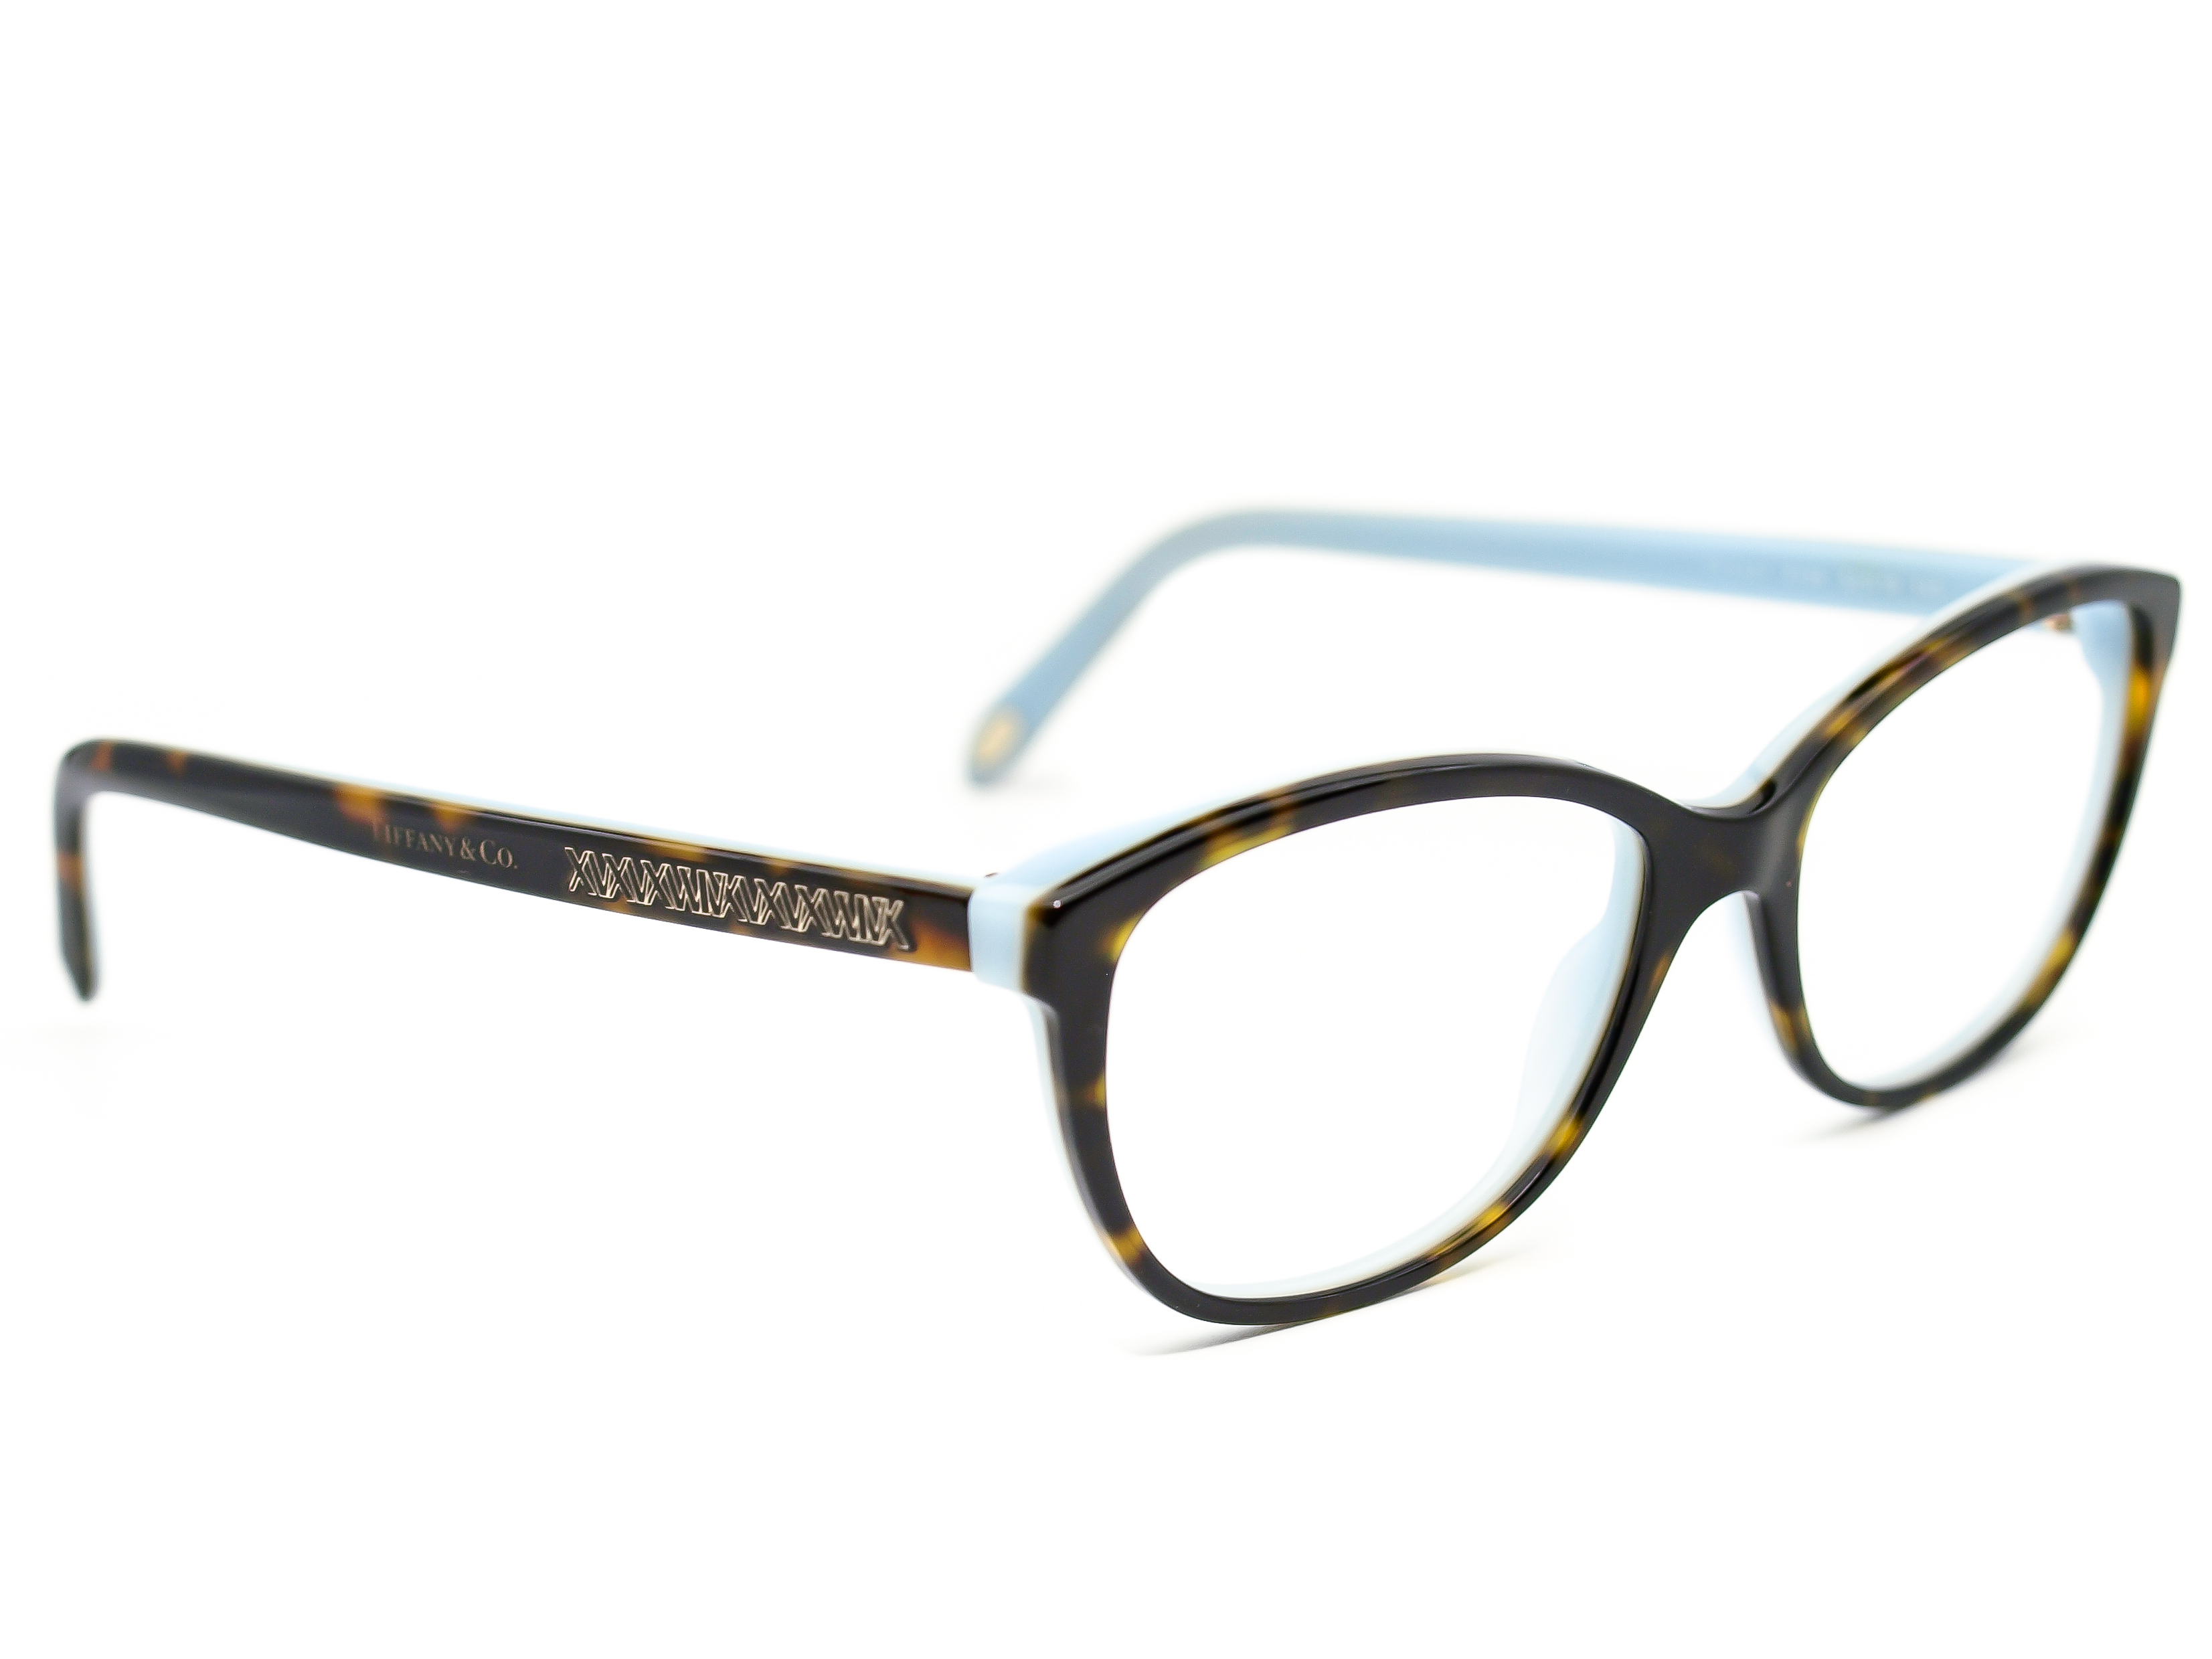 Tiffany & Co. TF 2121 8134 Eyeglasses